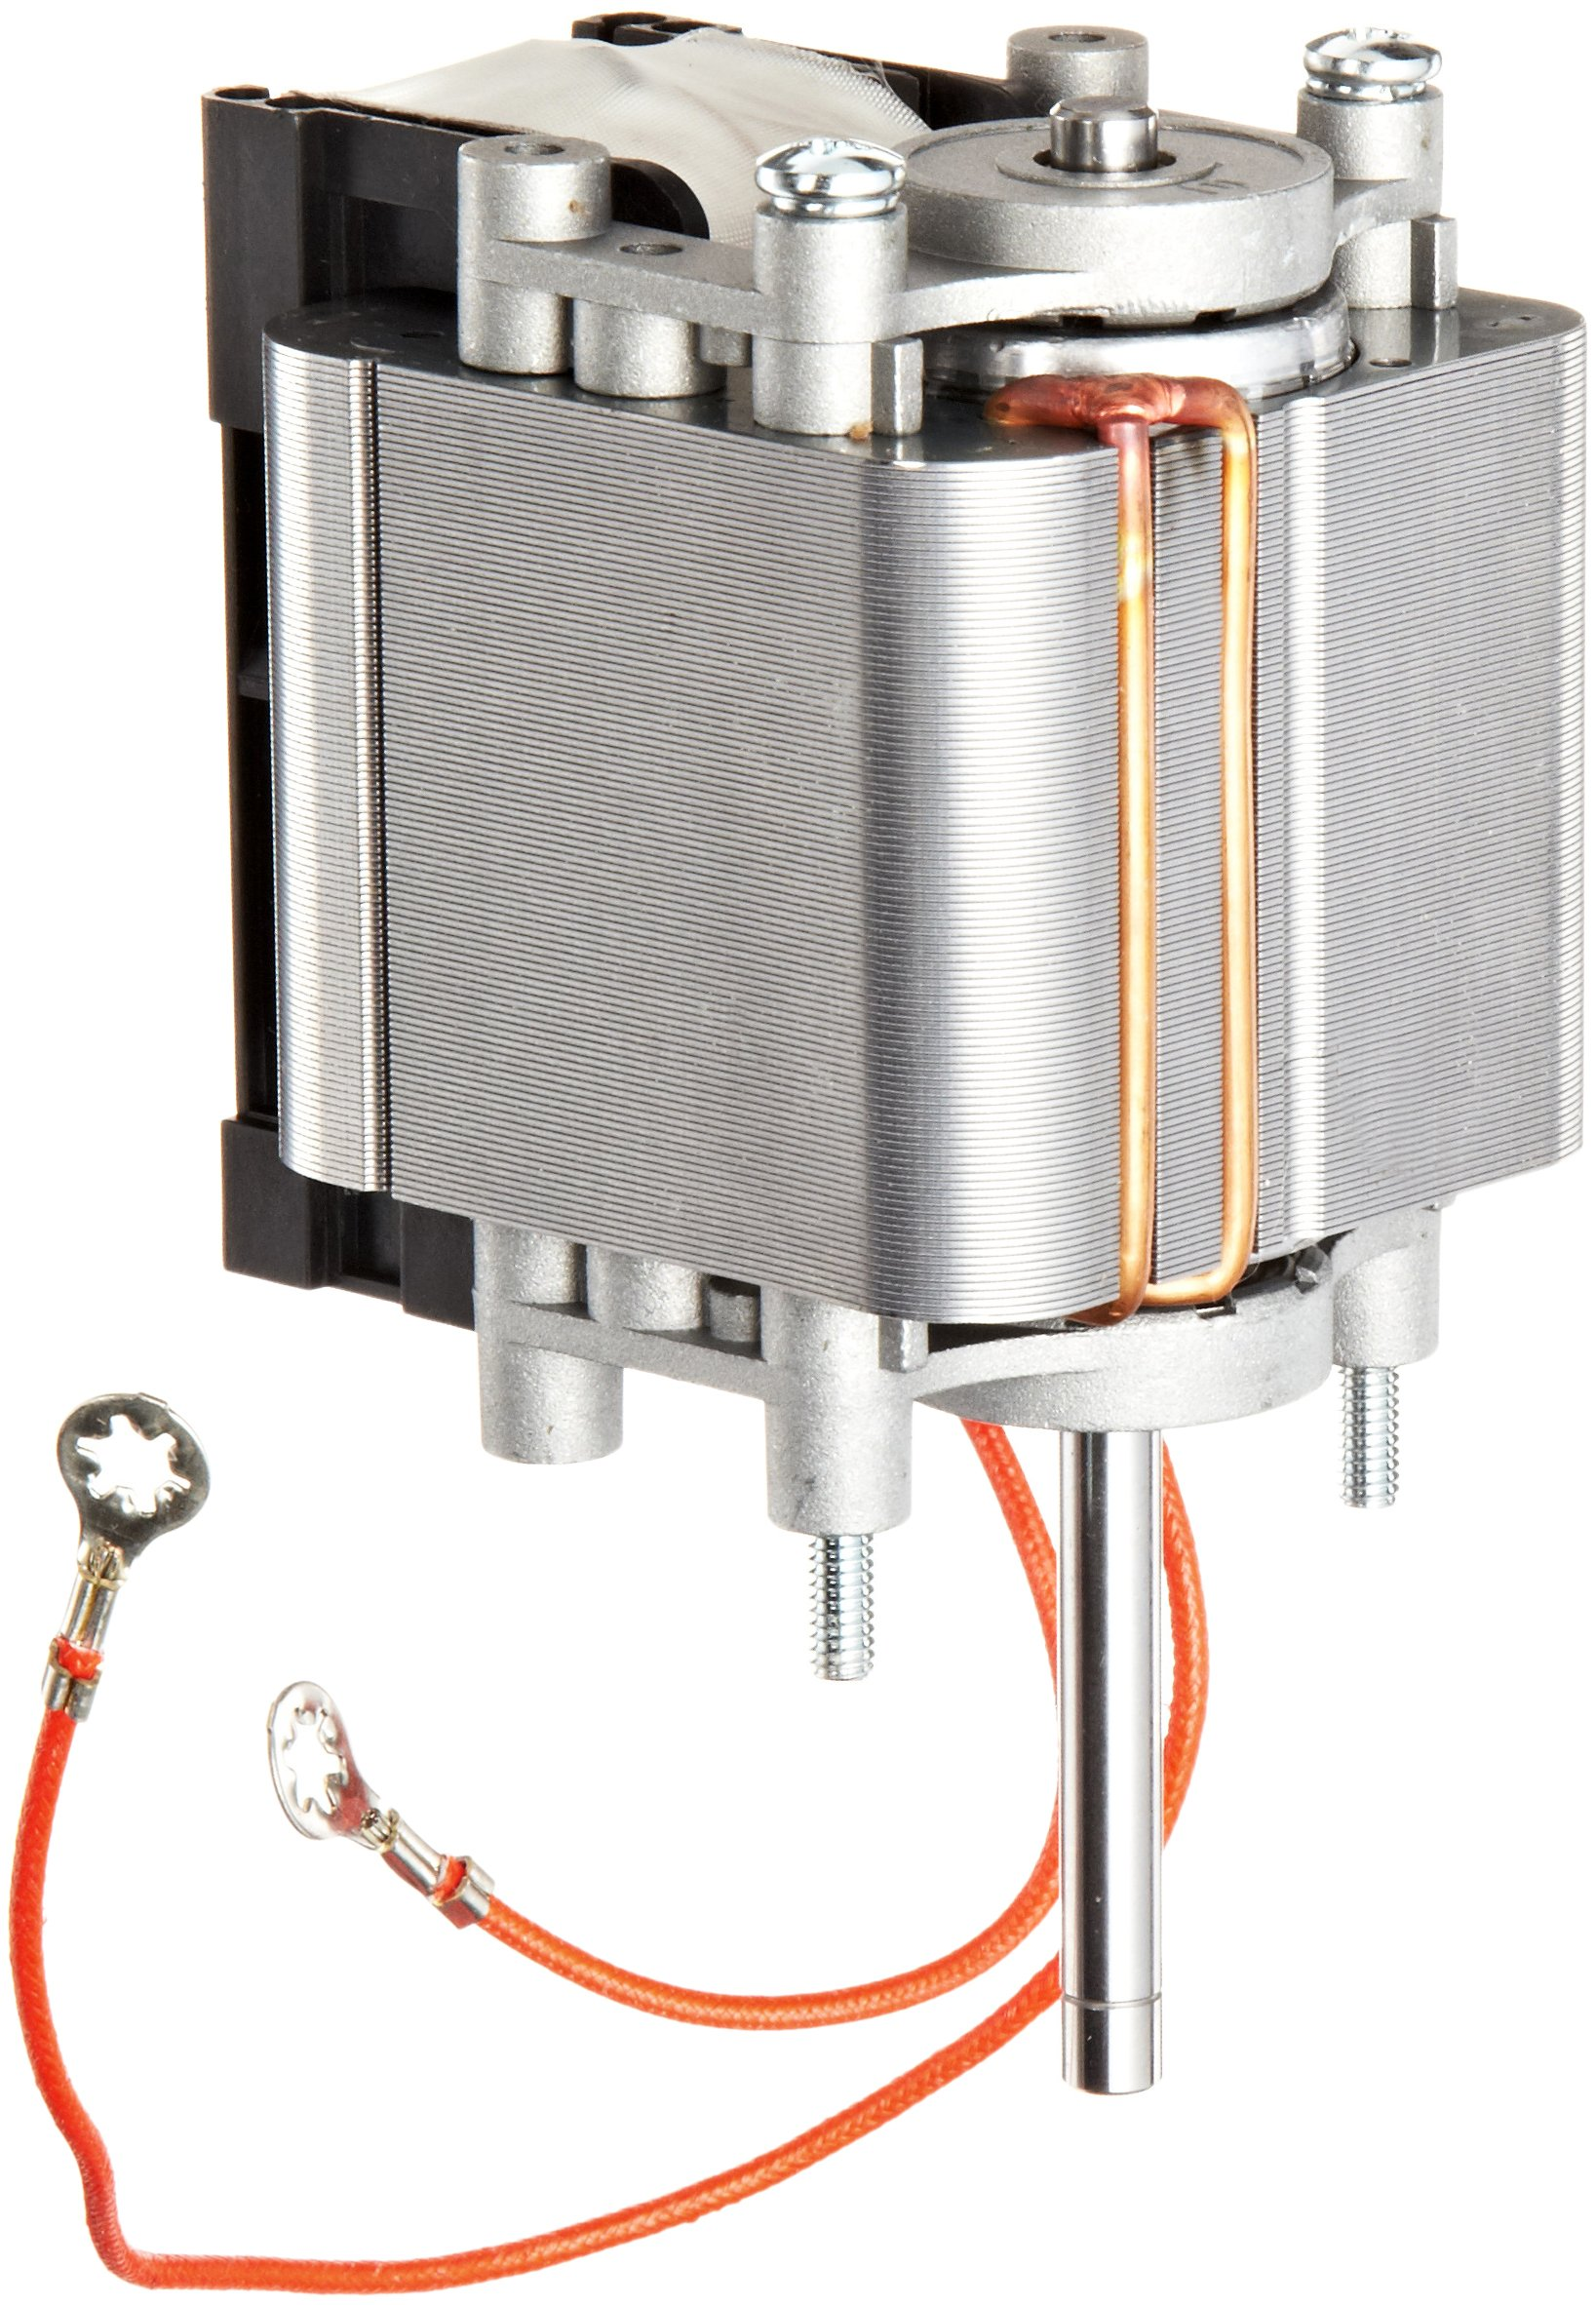 American Dryer SP217C Replacement Motor, 1/10 HP, 3,200 RPM, 230V, for A, DR, DRC, GB, and SP Series Hand Dryers